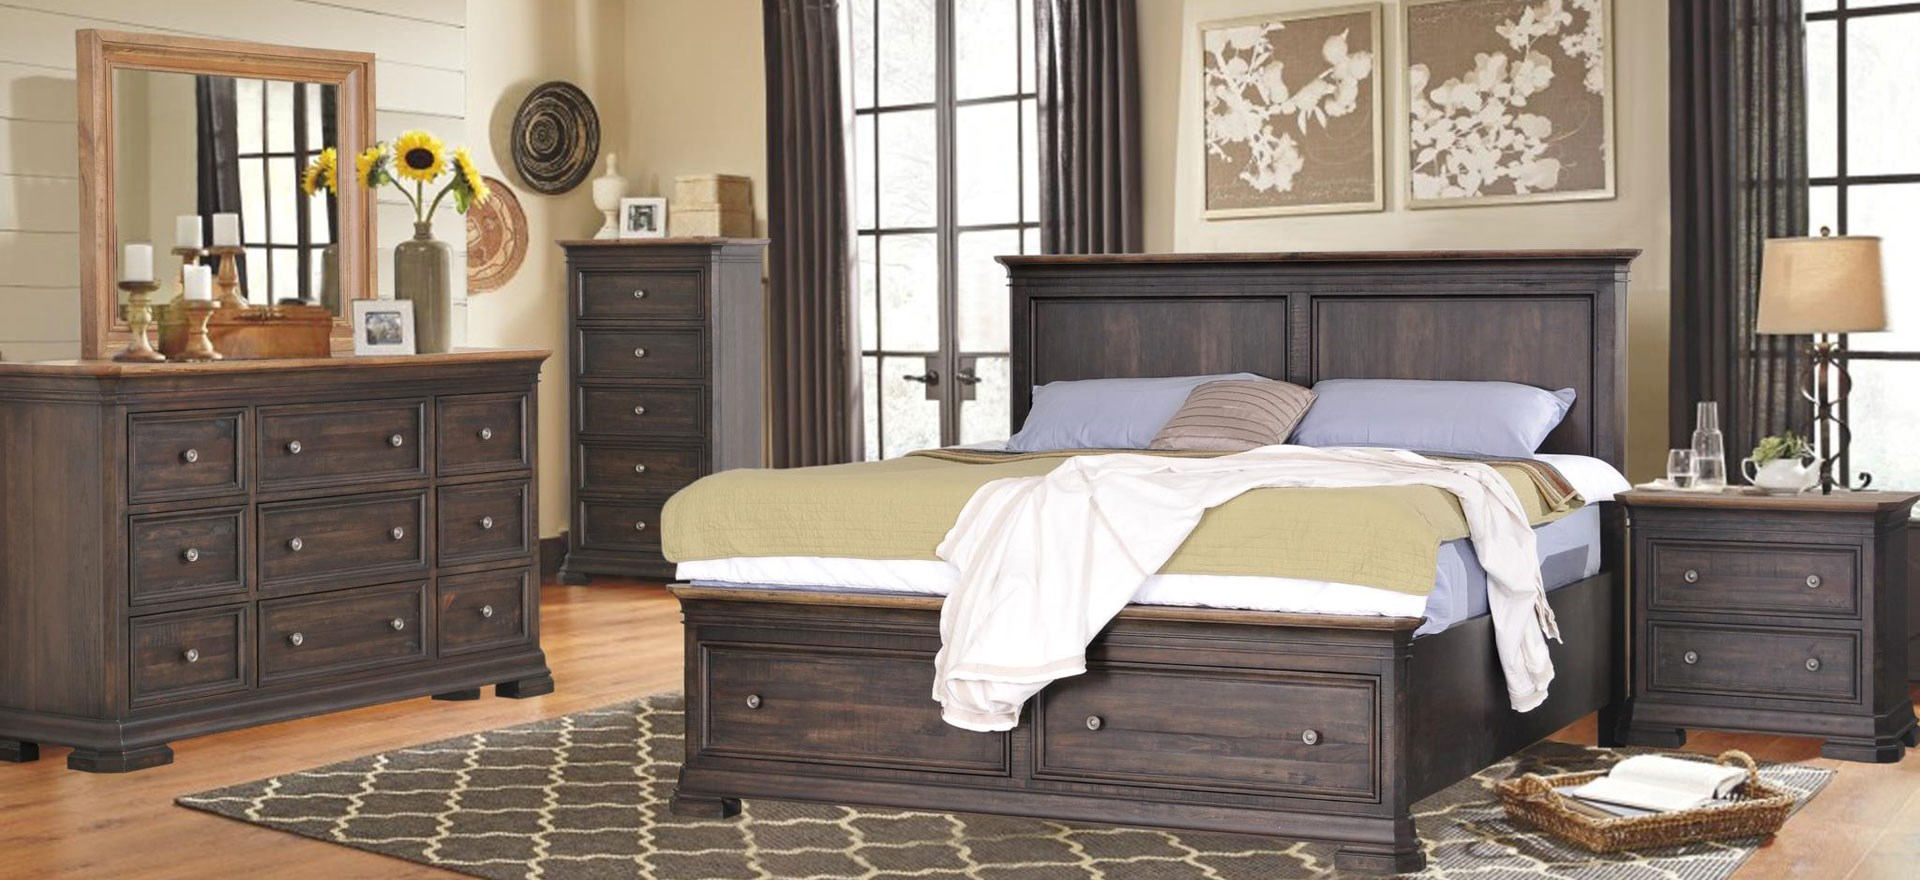 bed, dressers, and nightstands